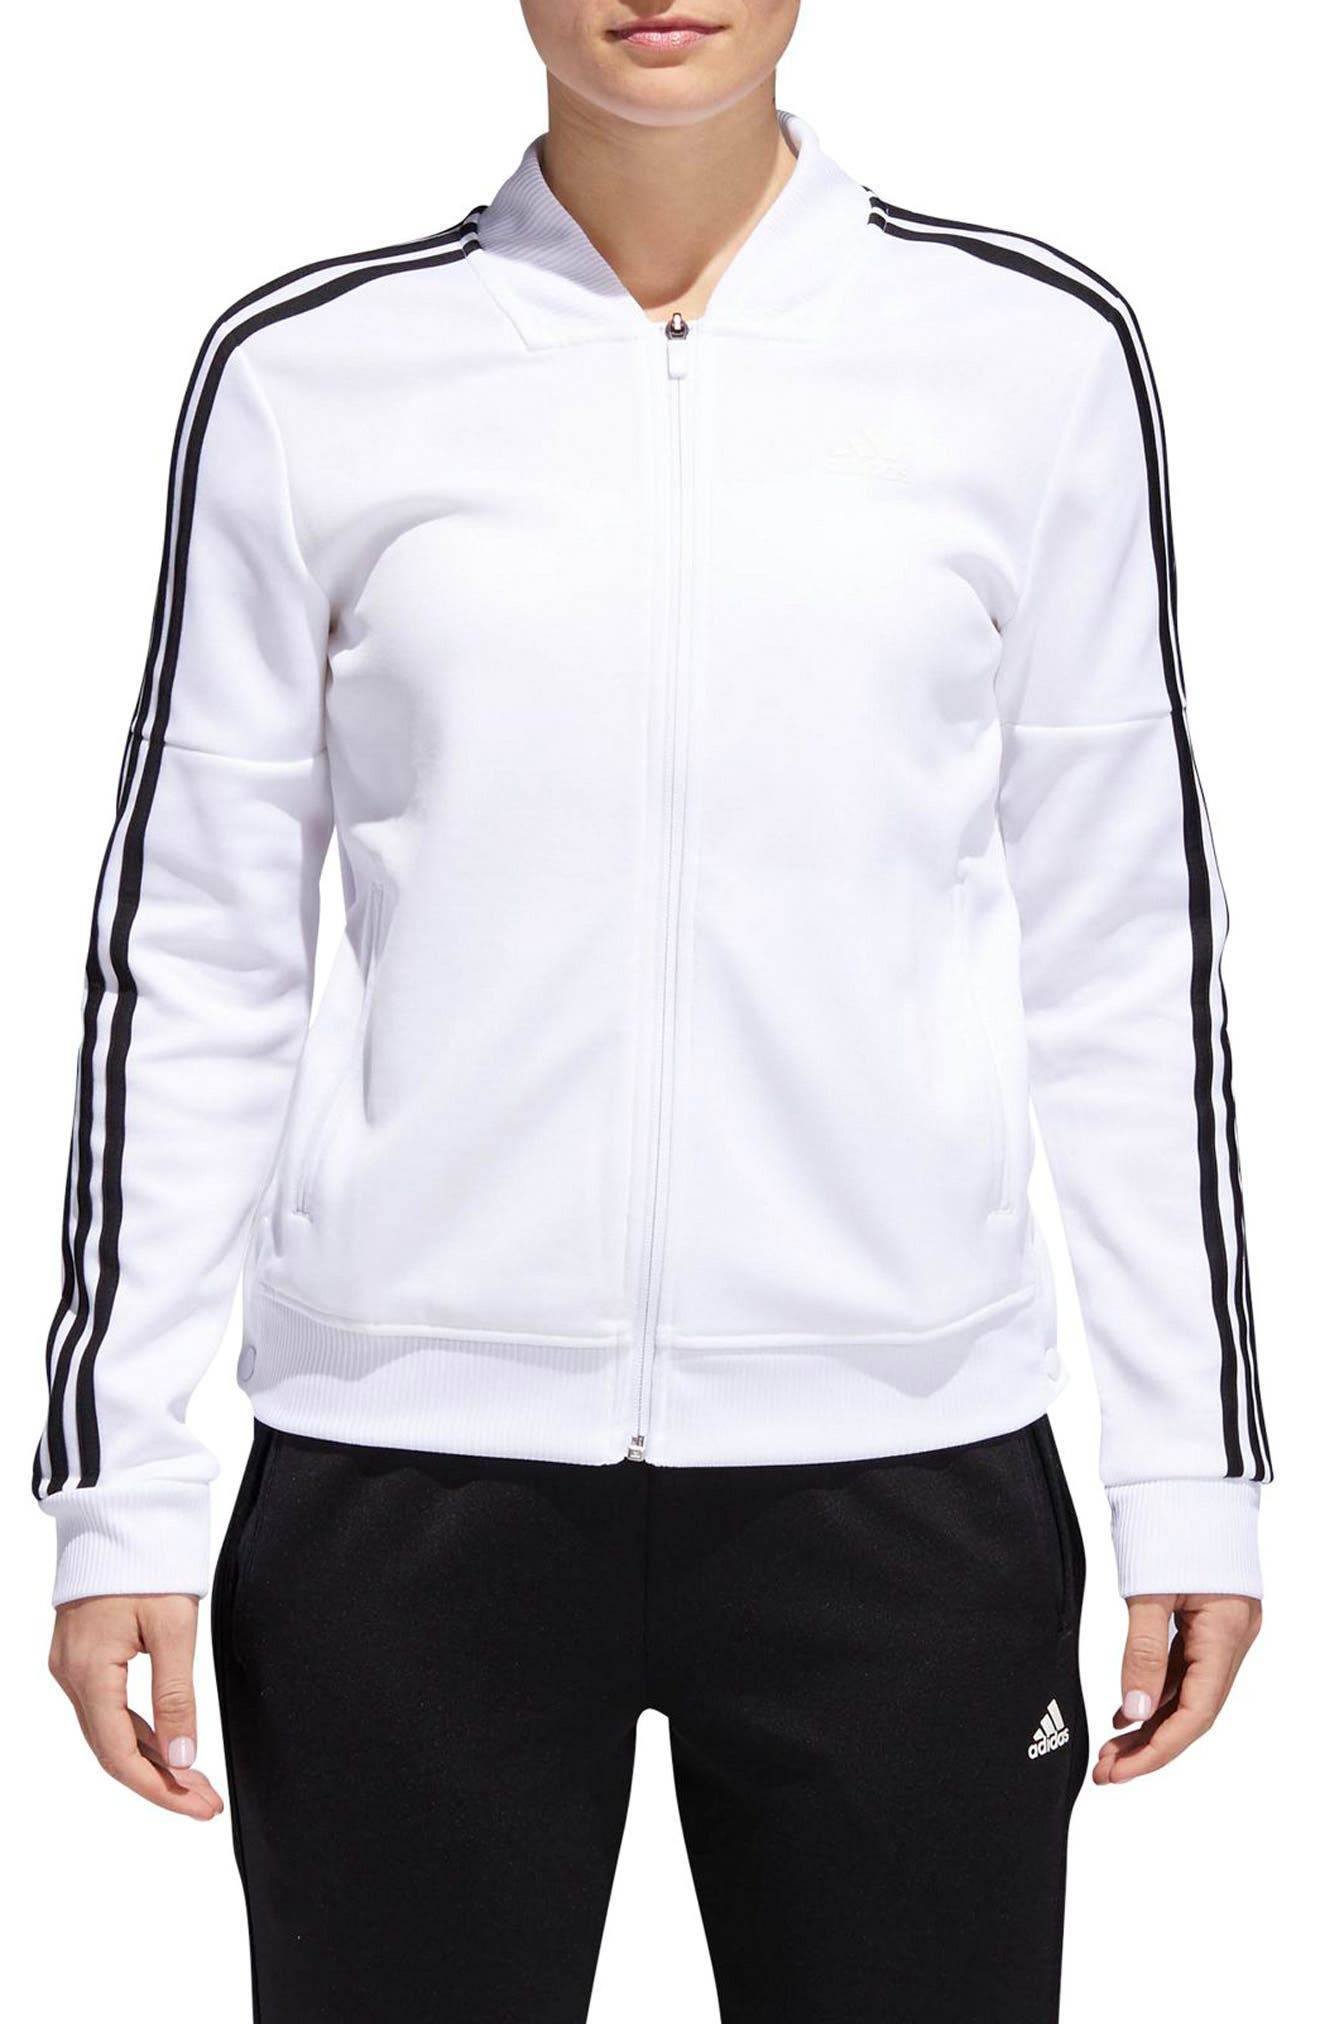 adidas Tricot Snap It Track Jacket